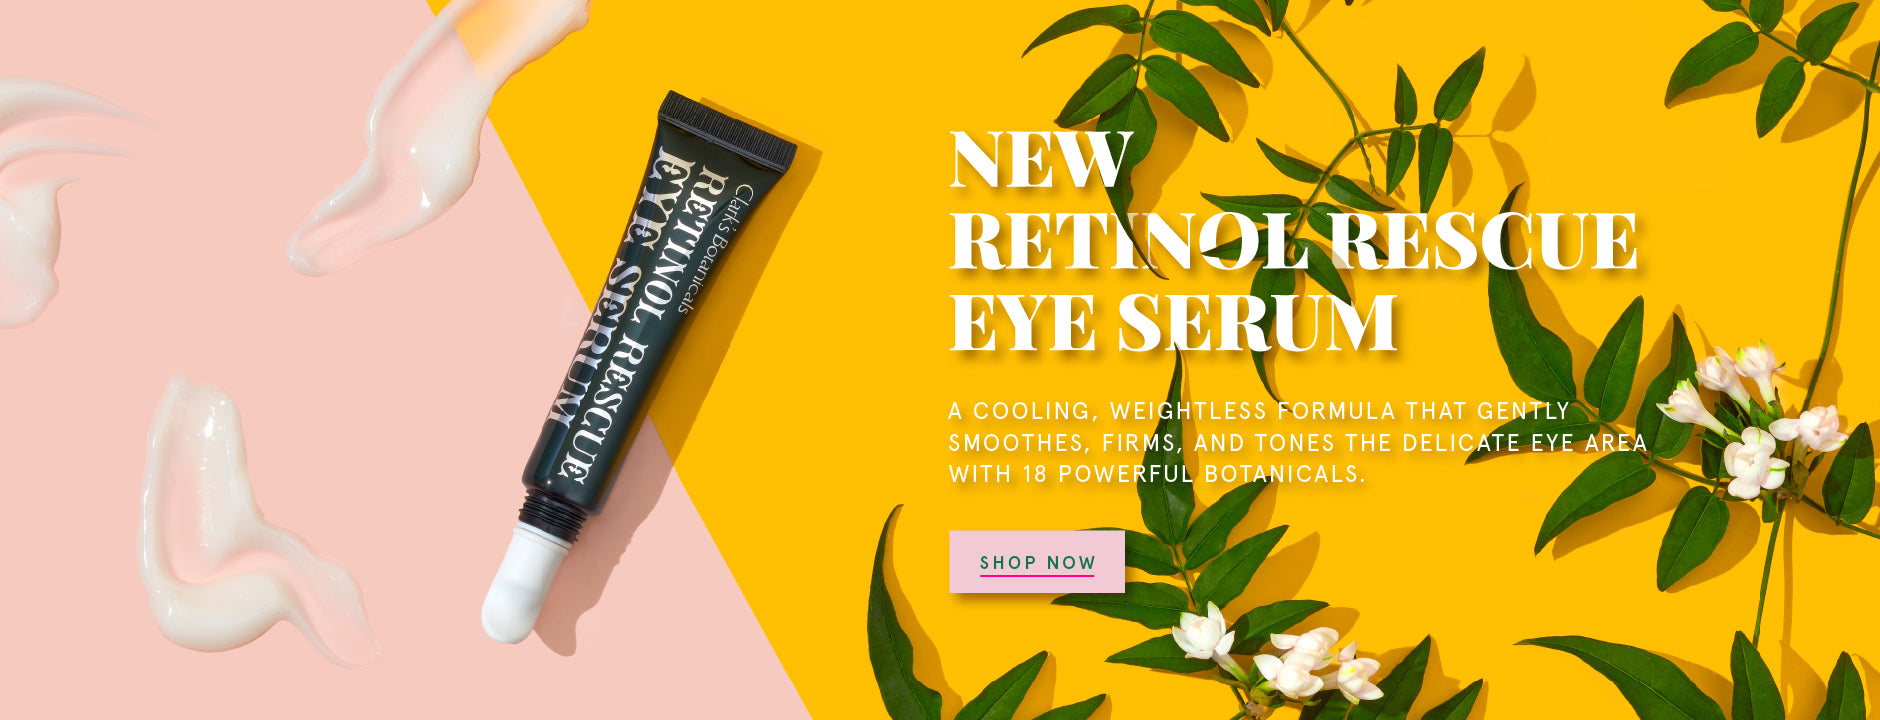 Retinol Rescue Eye Serum Clark's Botanicals Luxury Beauty Products